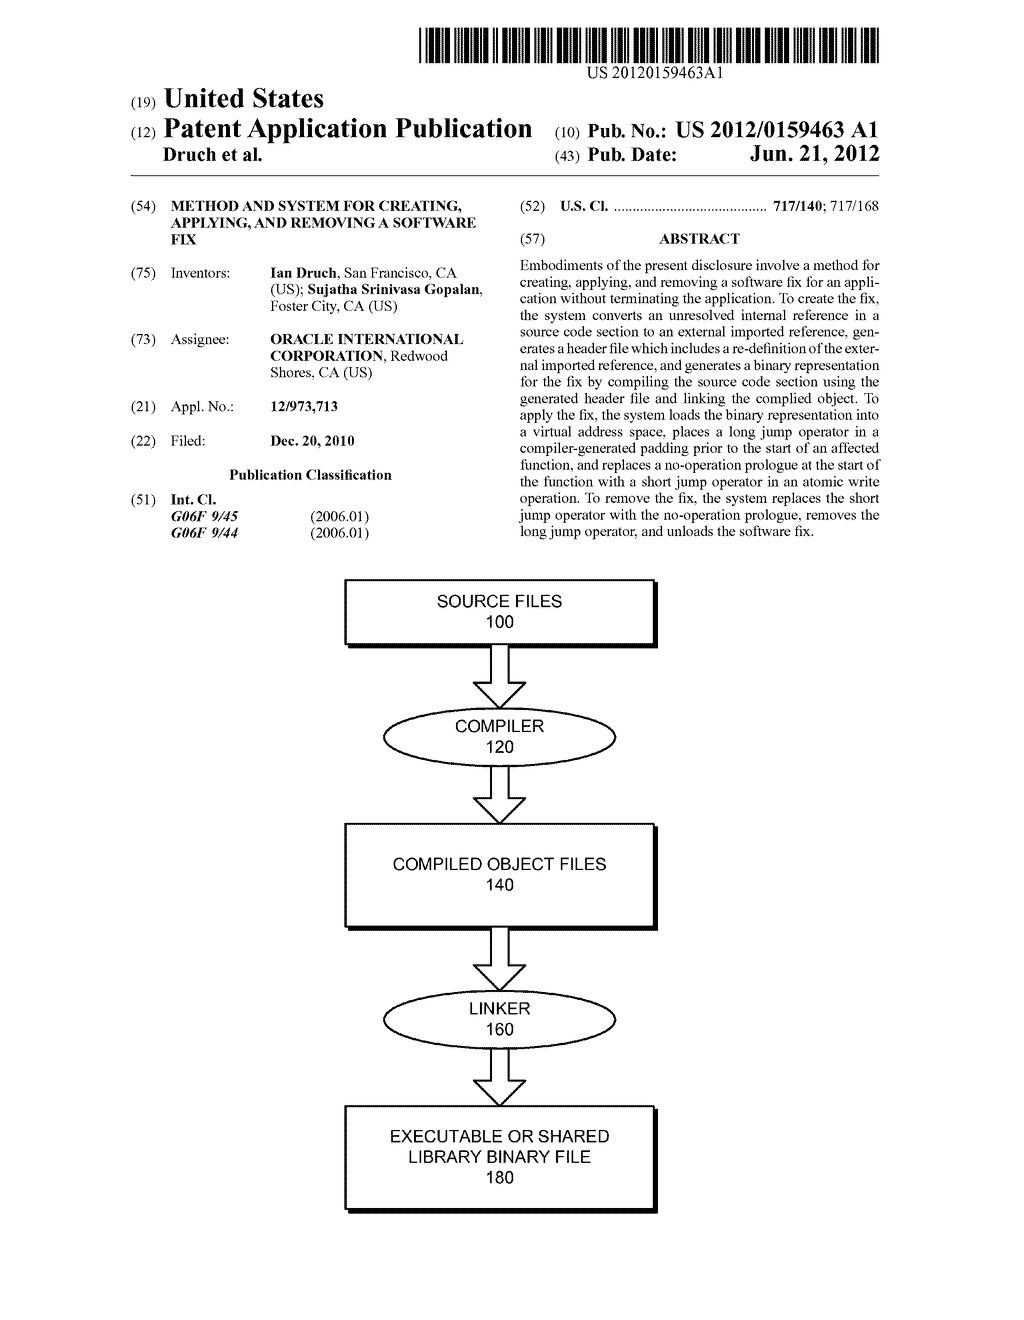 METHOD AND SYSTEM FOR CREATING, APPLYING, AND REMOVING A SOFTWARE FIX - diagram, schematic, and image 01